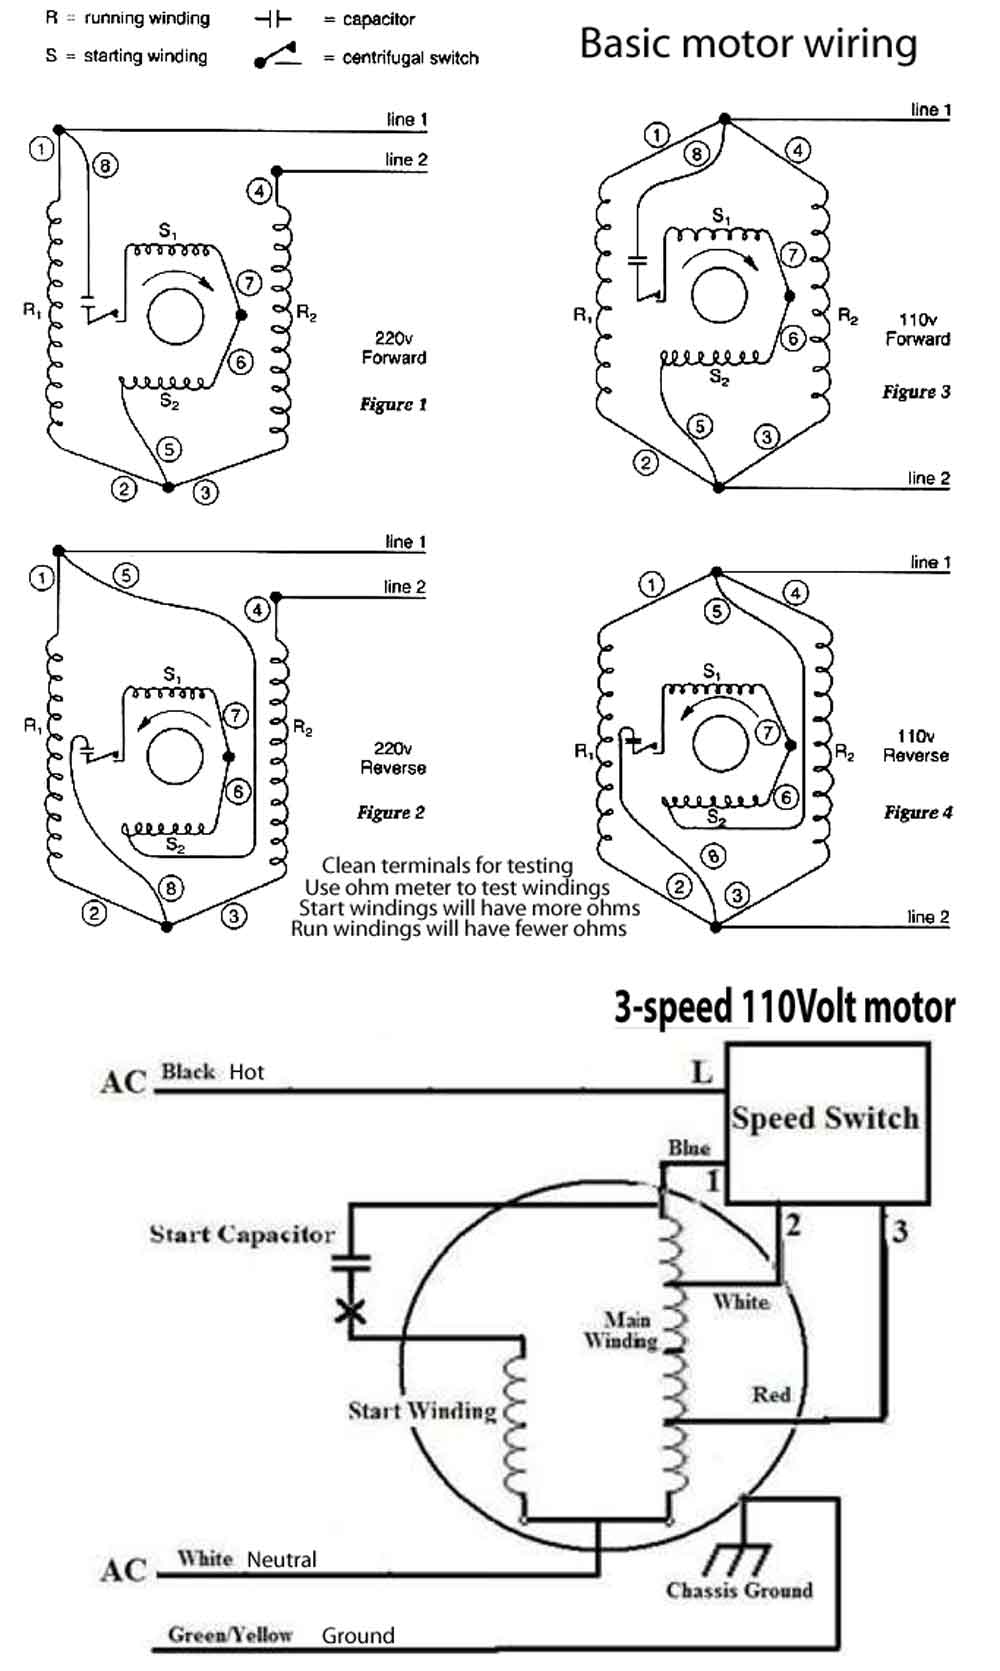 Wire size for motor